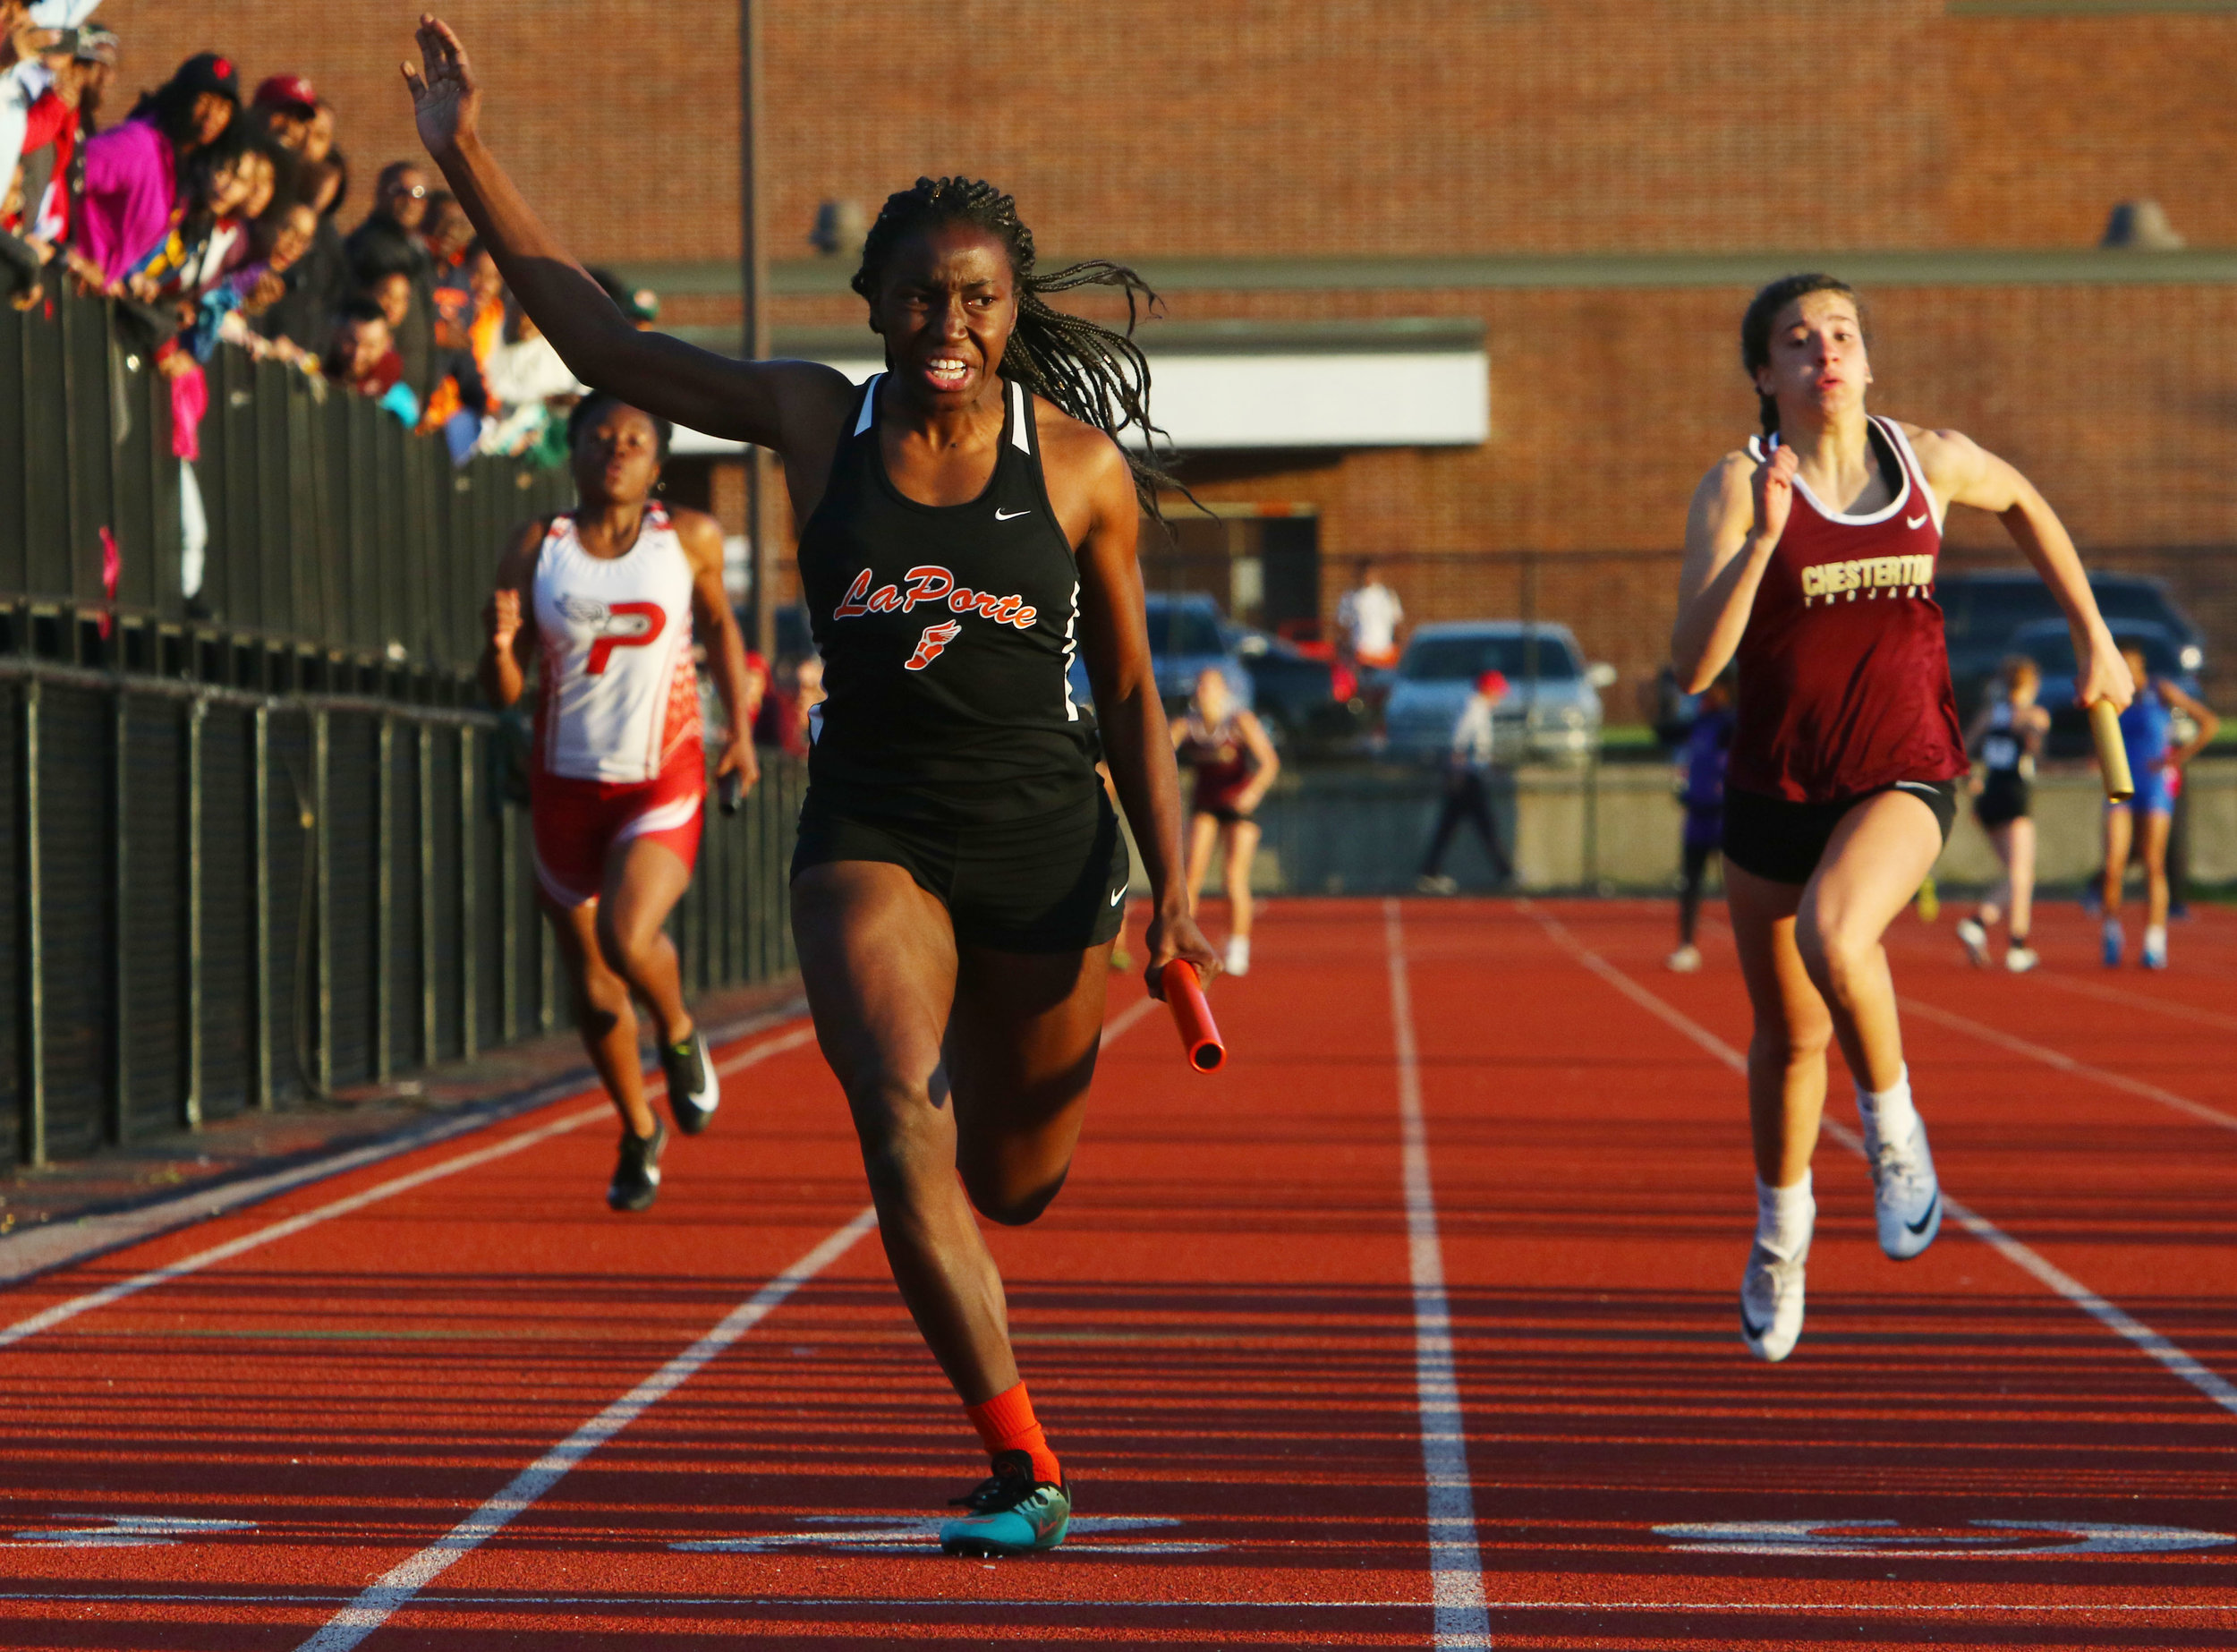 LaPorte's Nichole Flowers, center, powers through to the finish line in the 400 meter relay during girls track regionals at Portage.